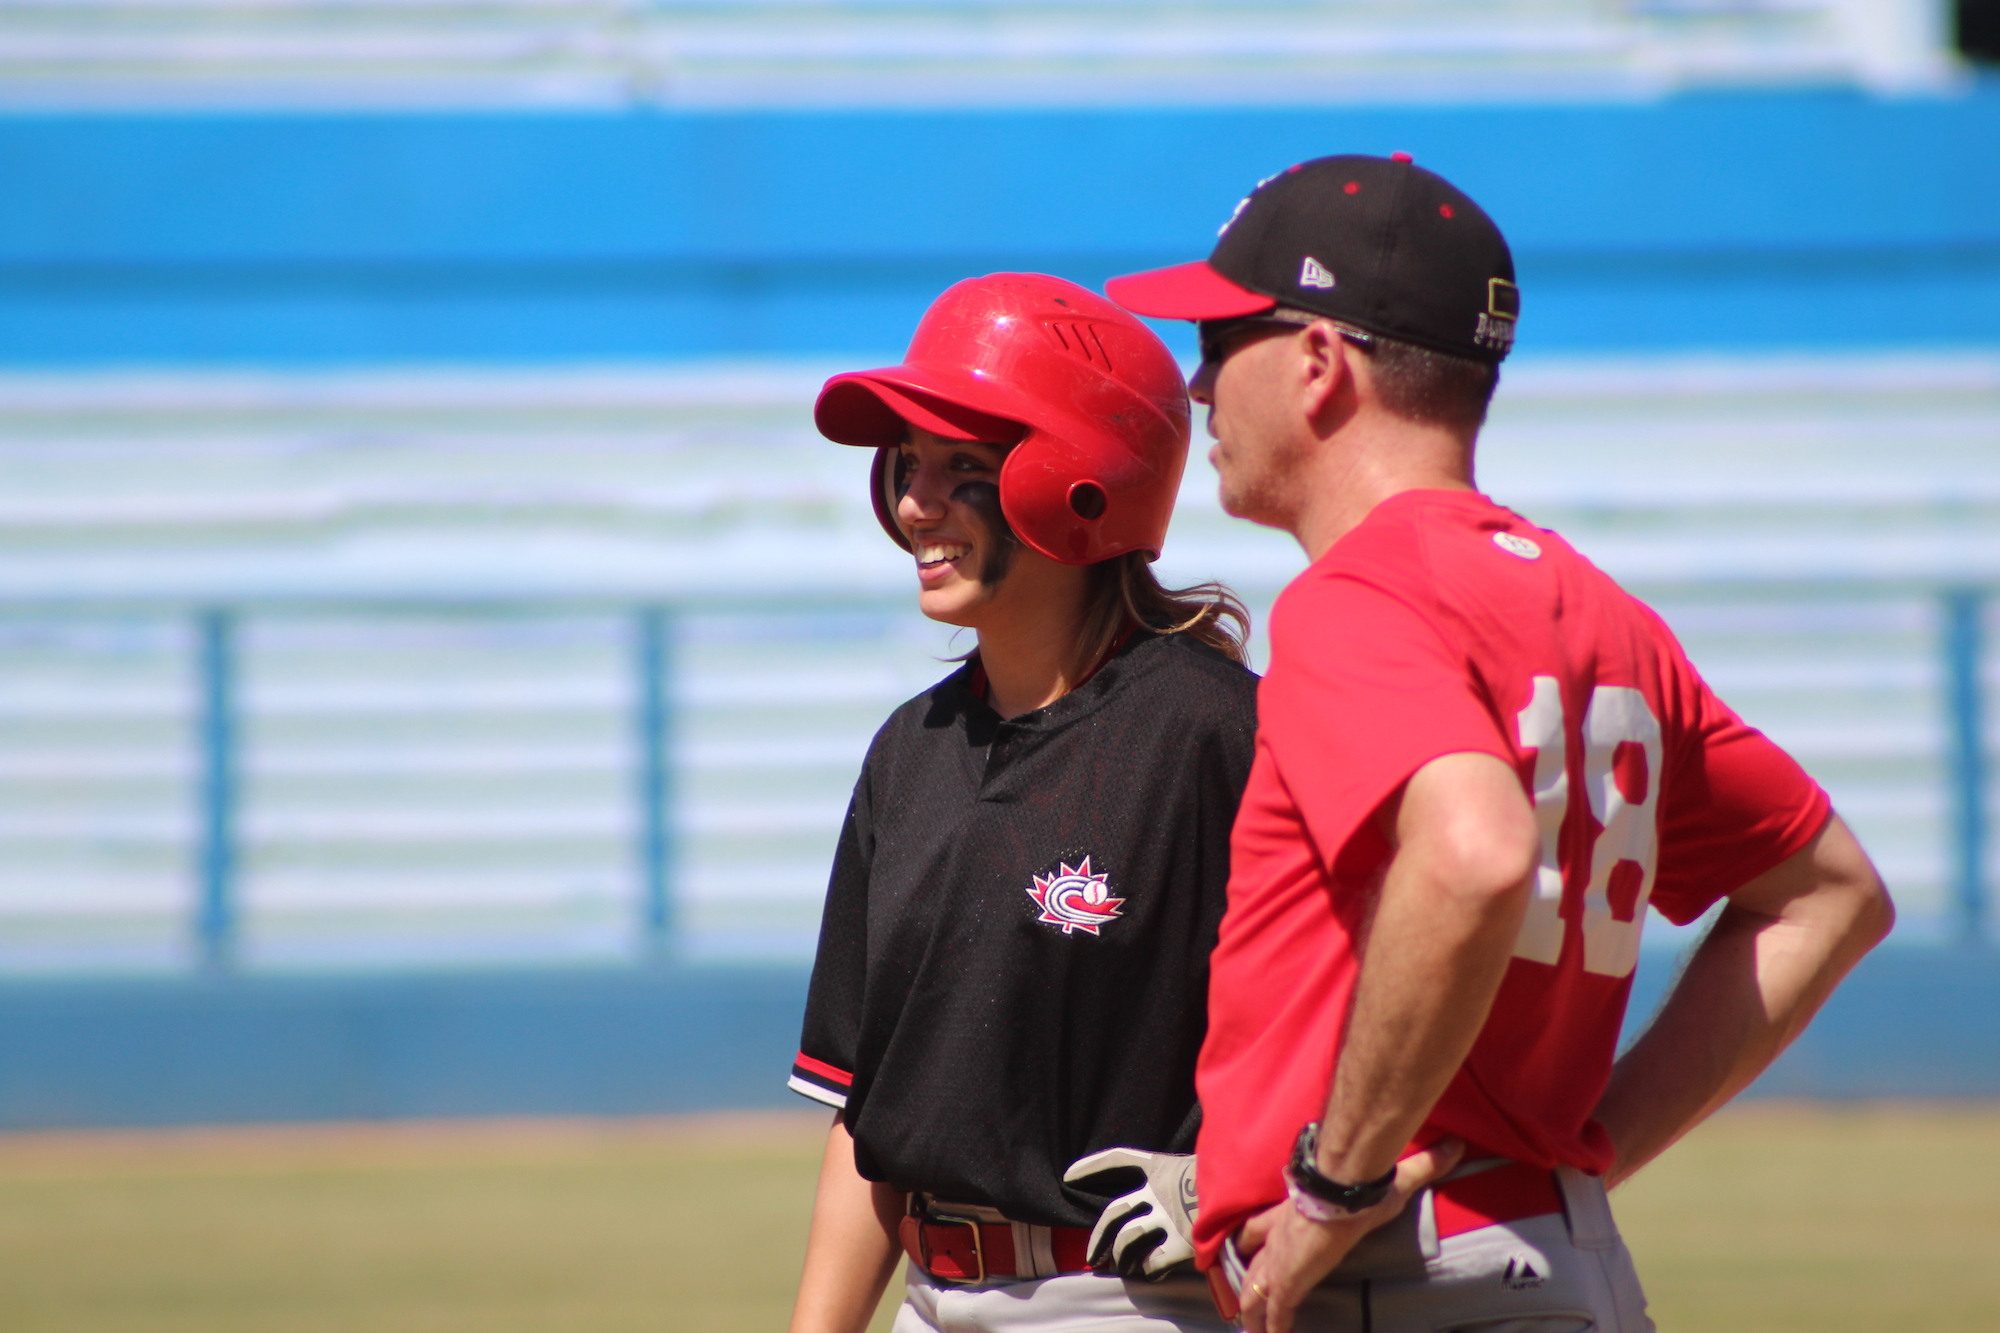 REGISTER: 2021 Girl's Baseball Development Camp in Cuba